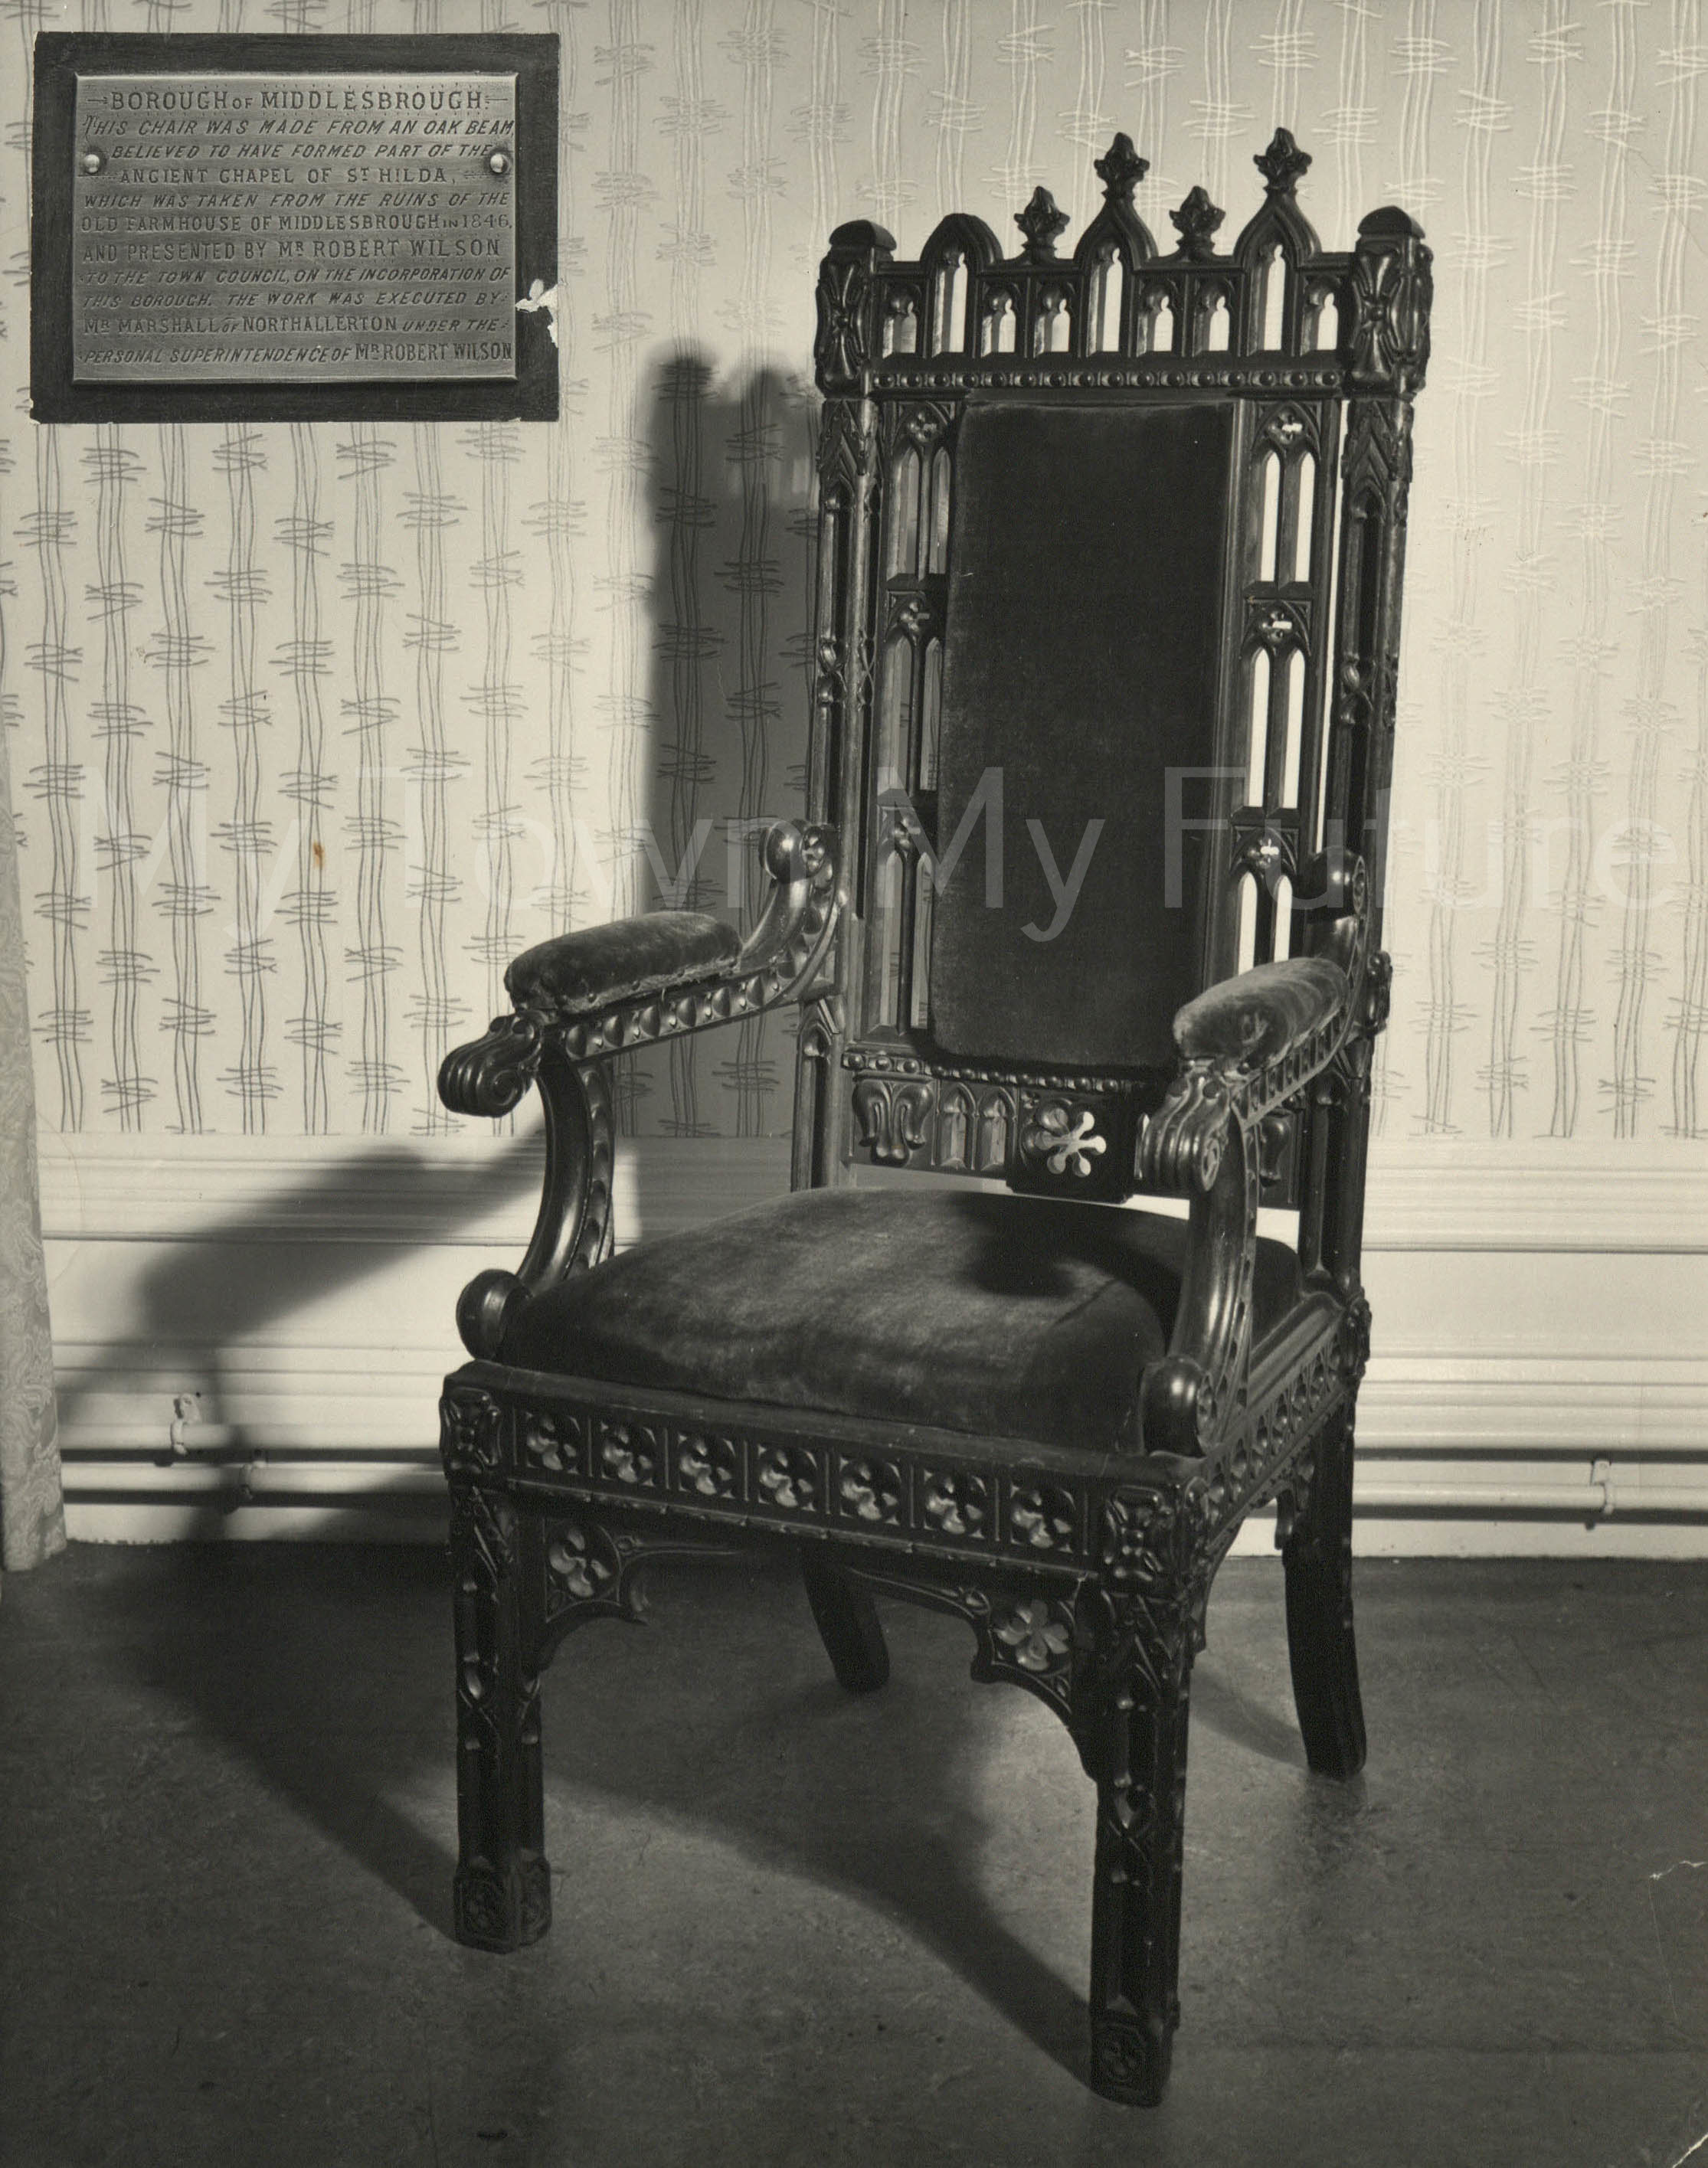 Mayor Of Middlesbrough Chair Made From Priory Timber - Borough Engineers Department